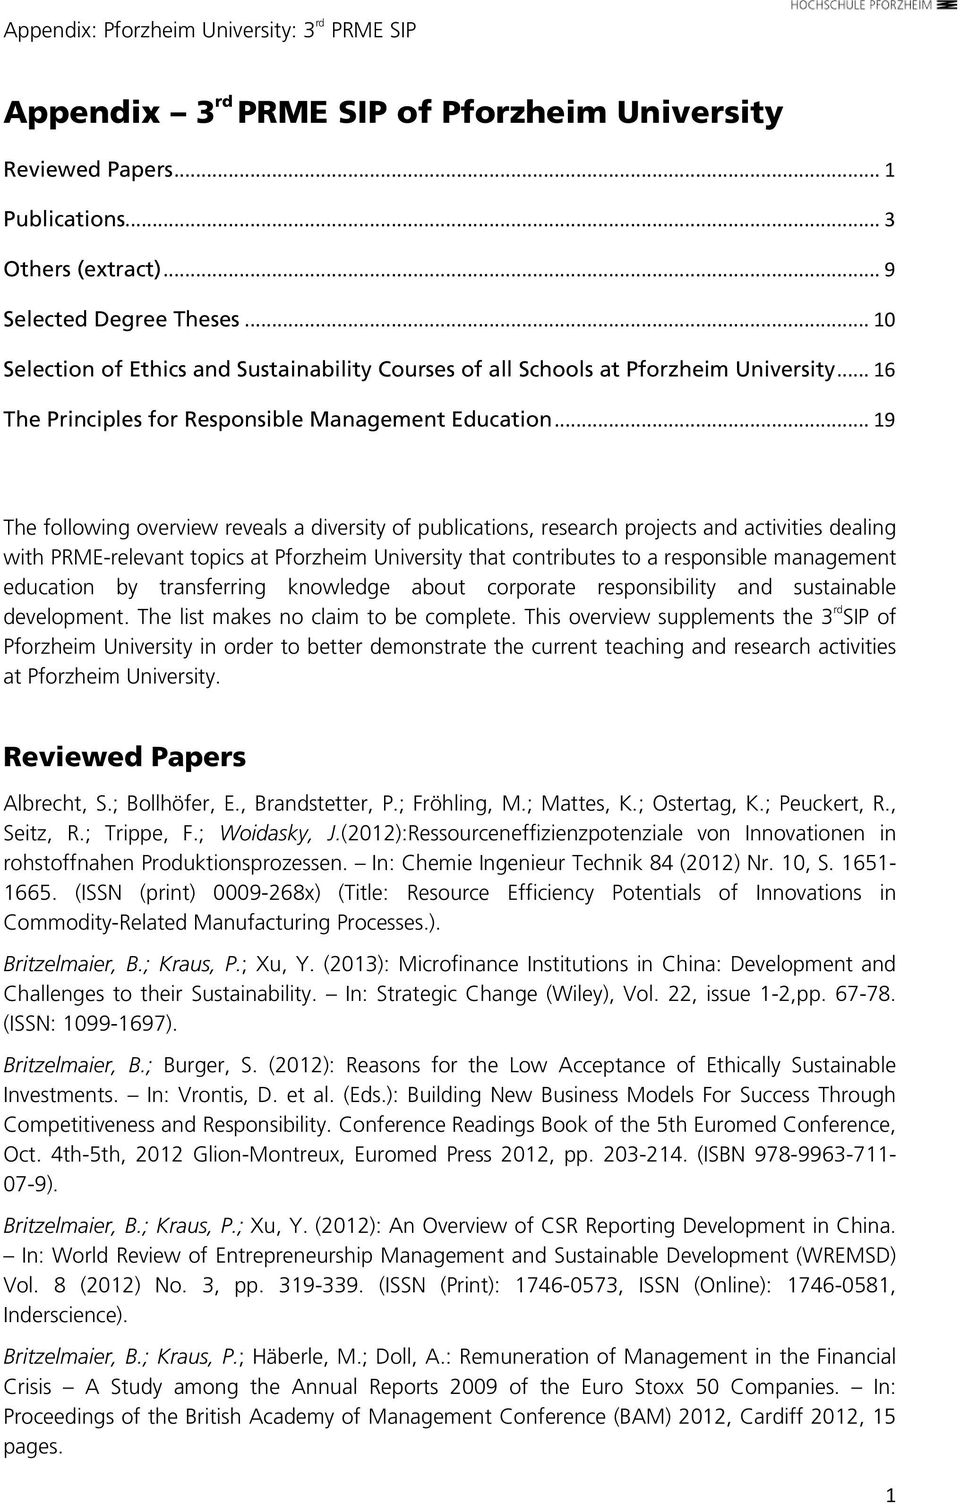 .. 19 The following overview reveals a diversity of publications, research projects and activities dealing with PRME-relevant topics at Pforzheim University that contributes to a responsible